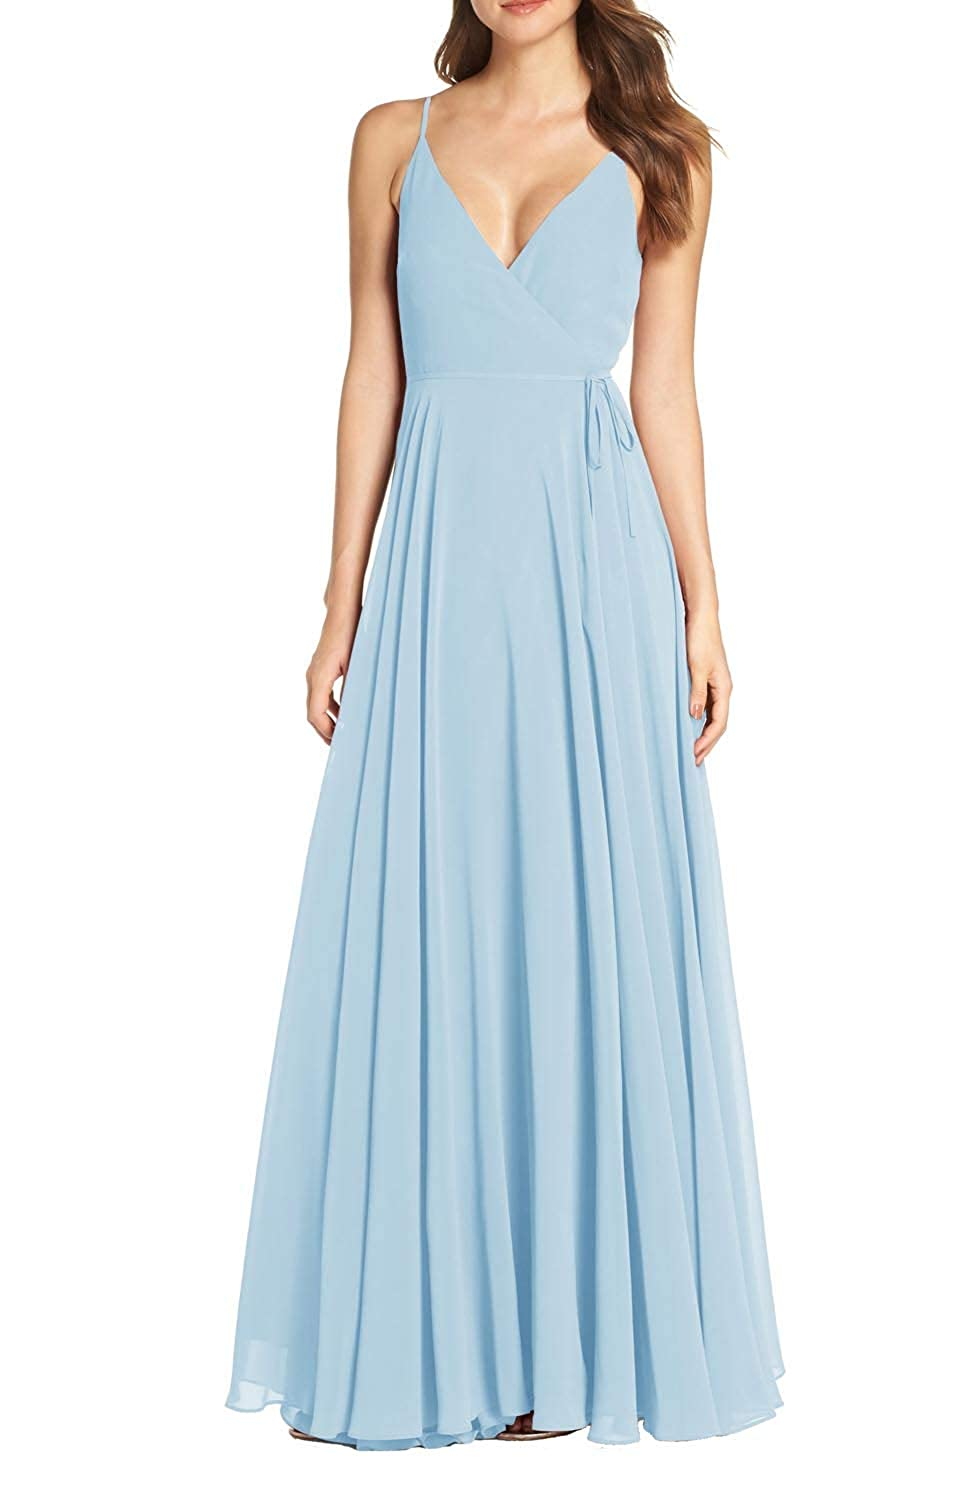 Ice bluee FeiYueXinXing Women's Sleeveless V Neck Evening Dresses Long Bridesmaid Ball Gown Prom Skirt